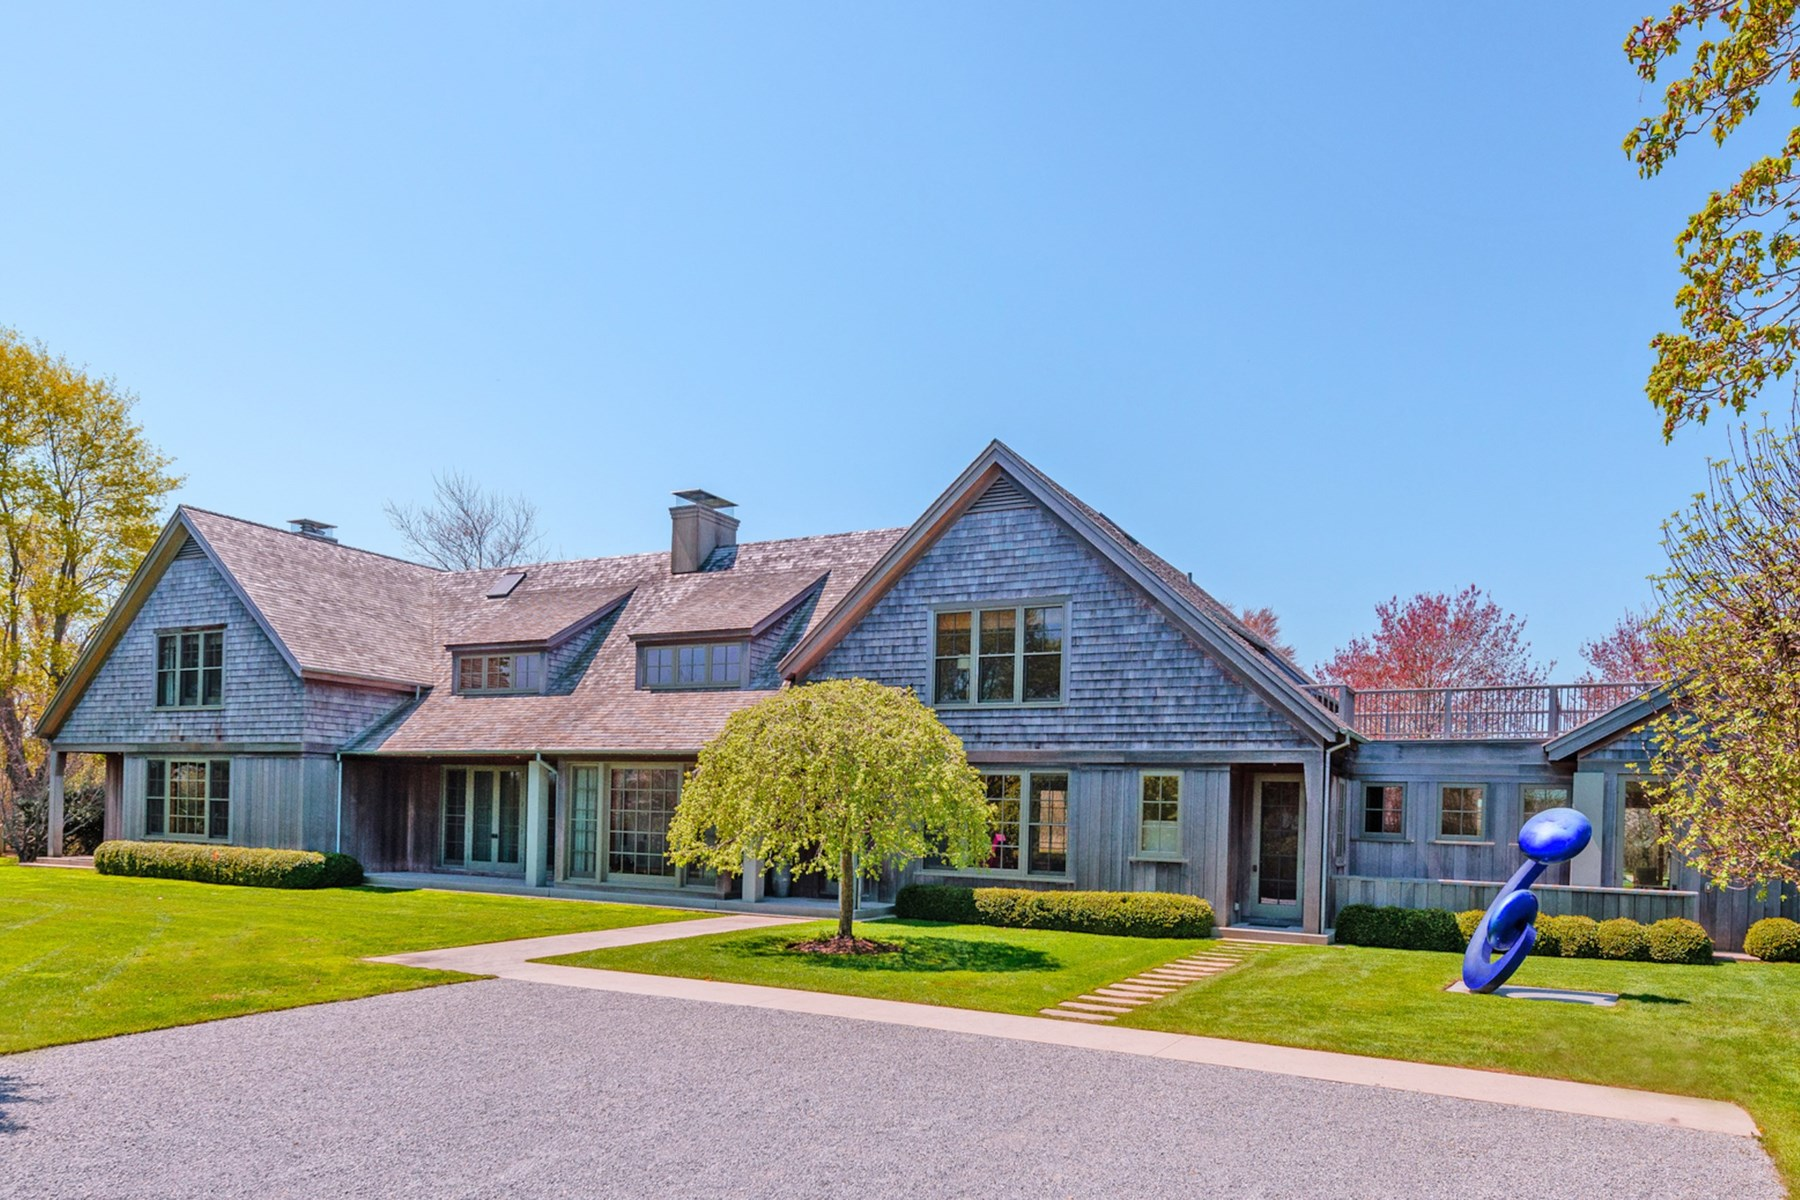 Single Family Home for Sale at A Block From The Beach 37 Wainscott Main Street Wainscott, New York 11975 United States